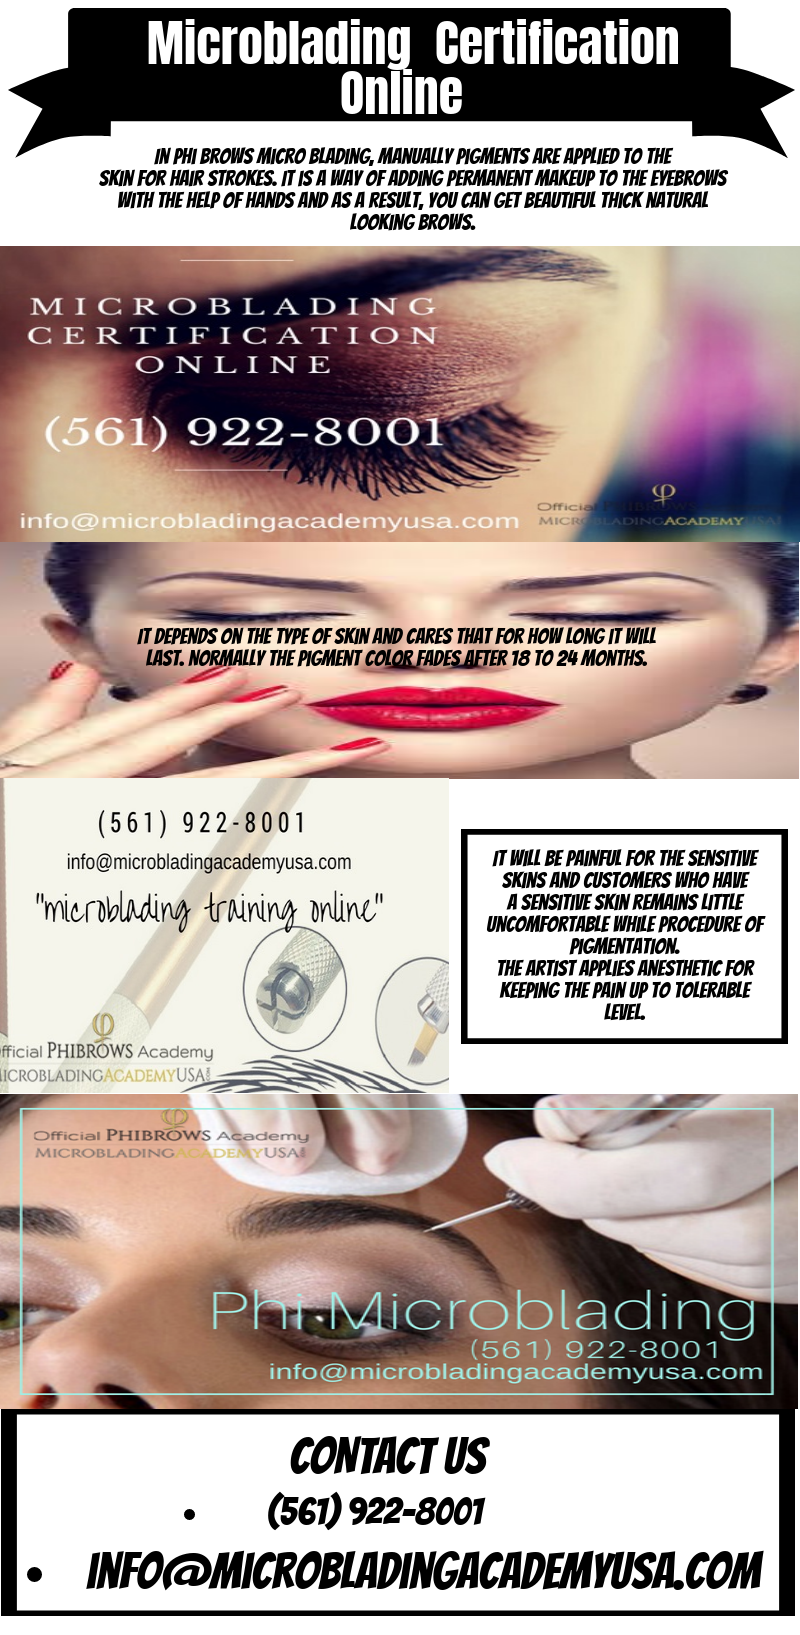 USA Based Official Microblading Online Training Academy We